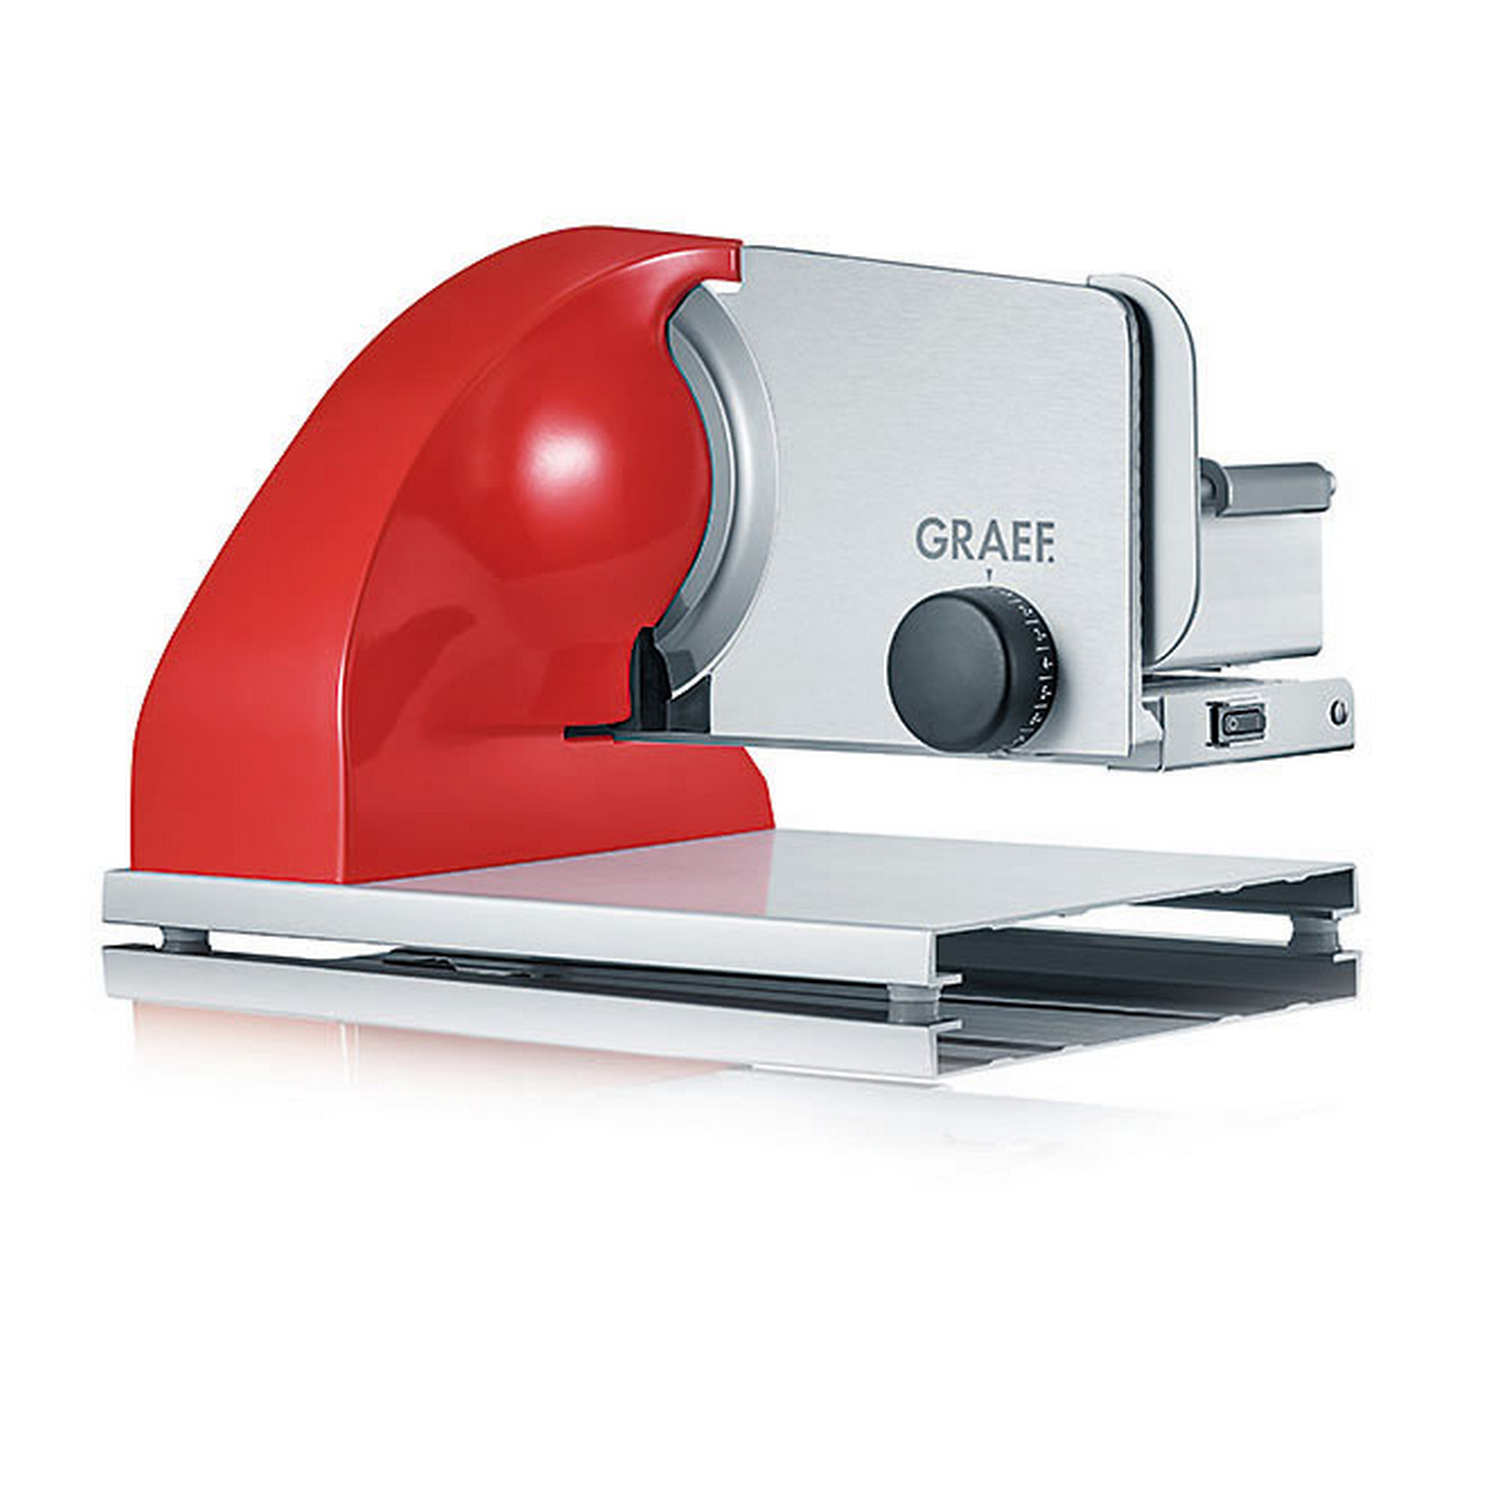 Graef Sliced Kitchen SKS 903 ALLESSCHNEIDER, ROT